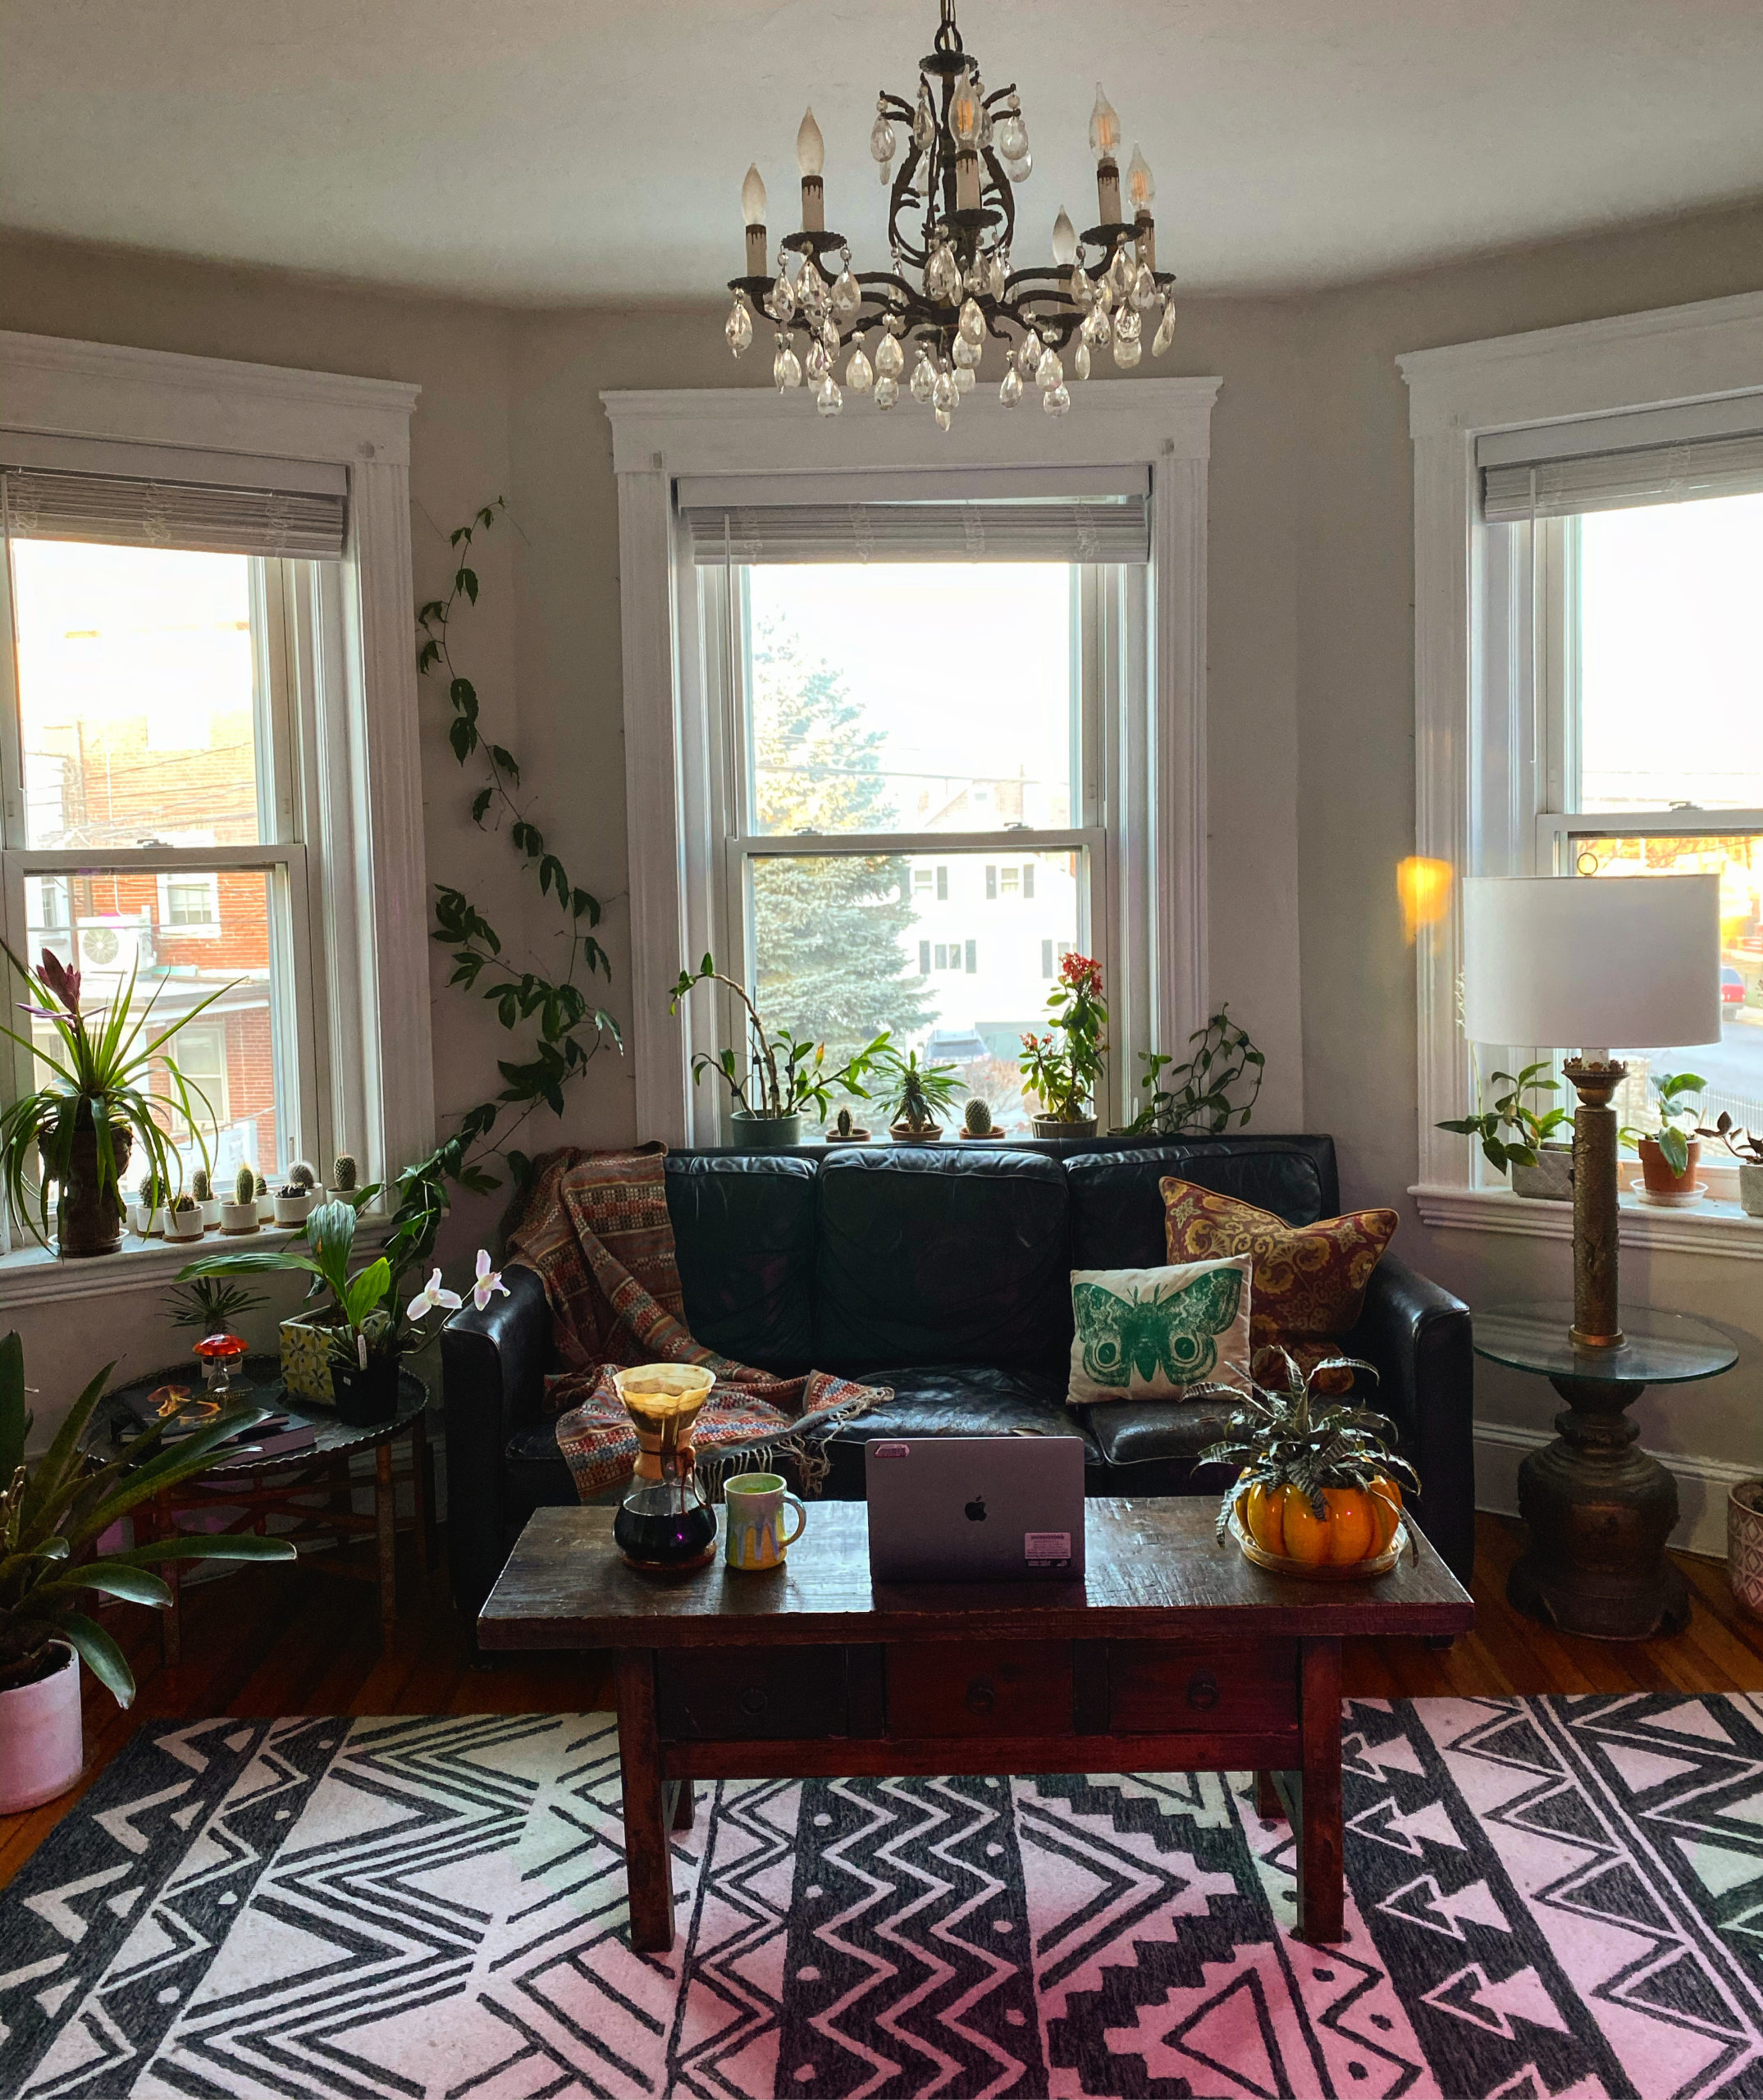 Tim's apartment with bay windows, a patterned rug, and tons of plants